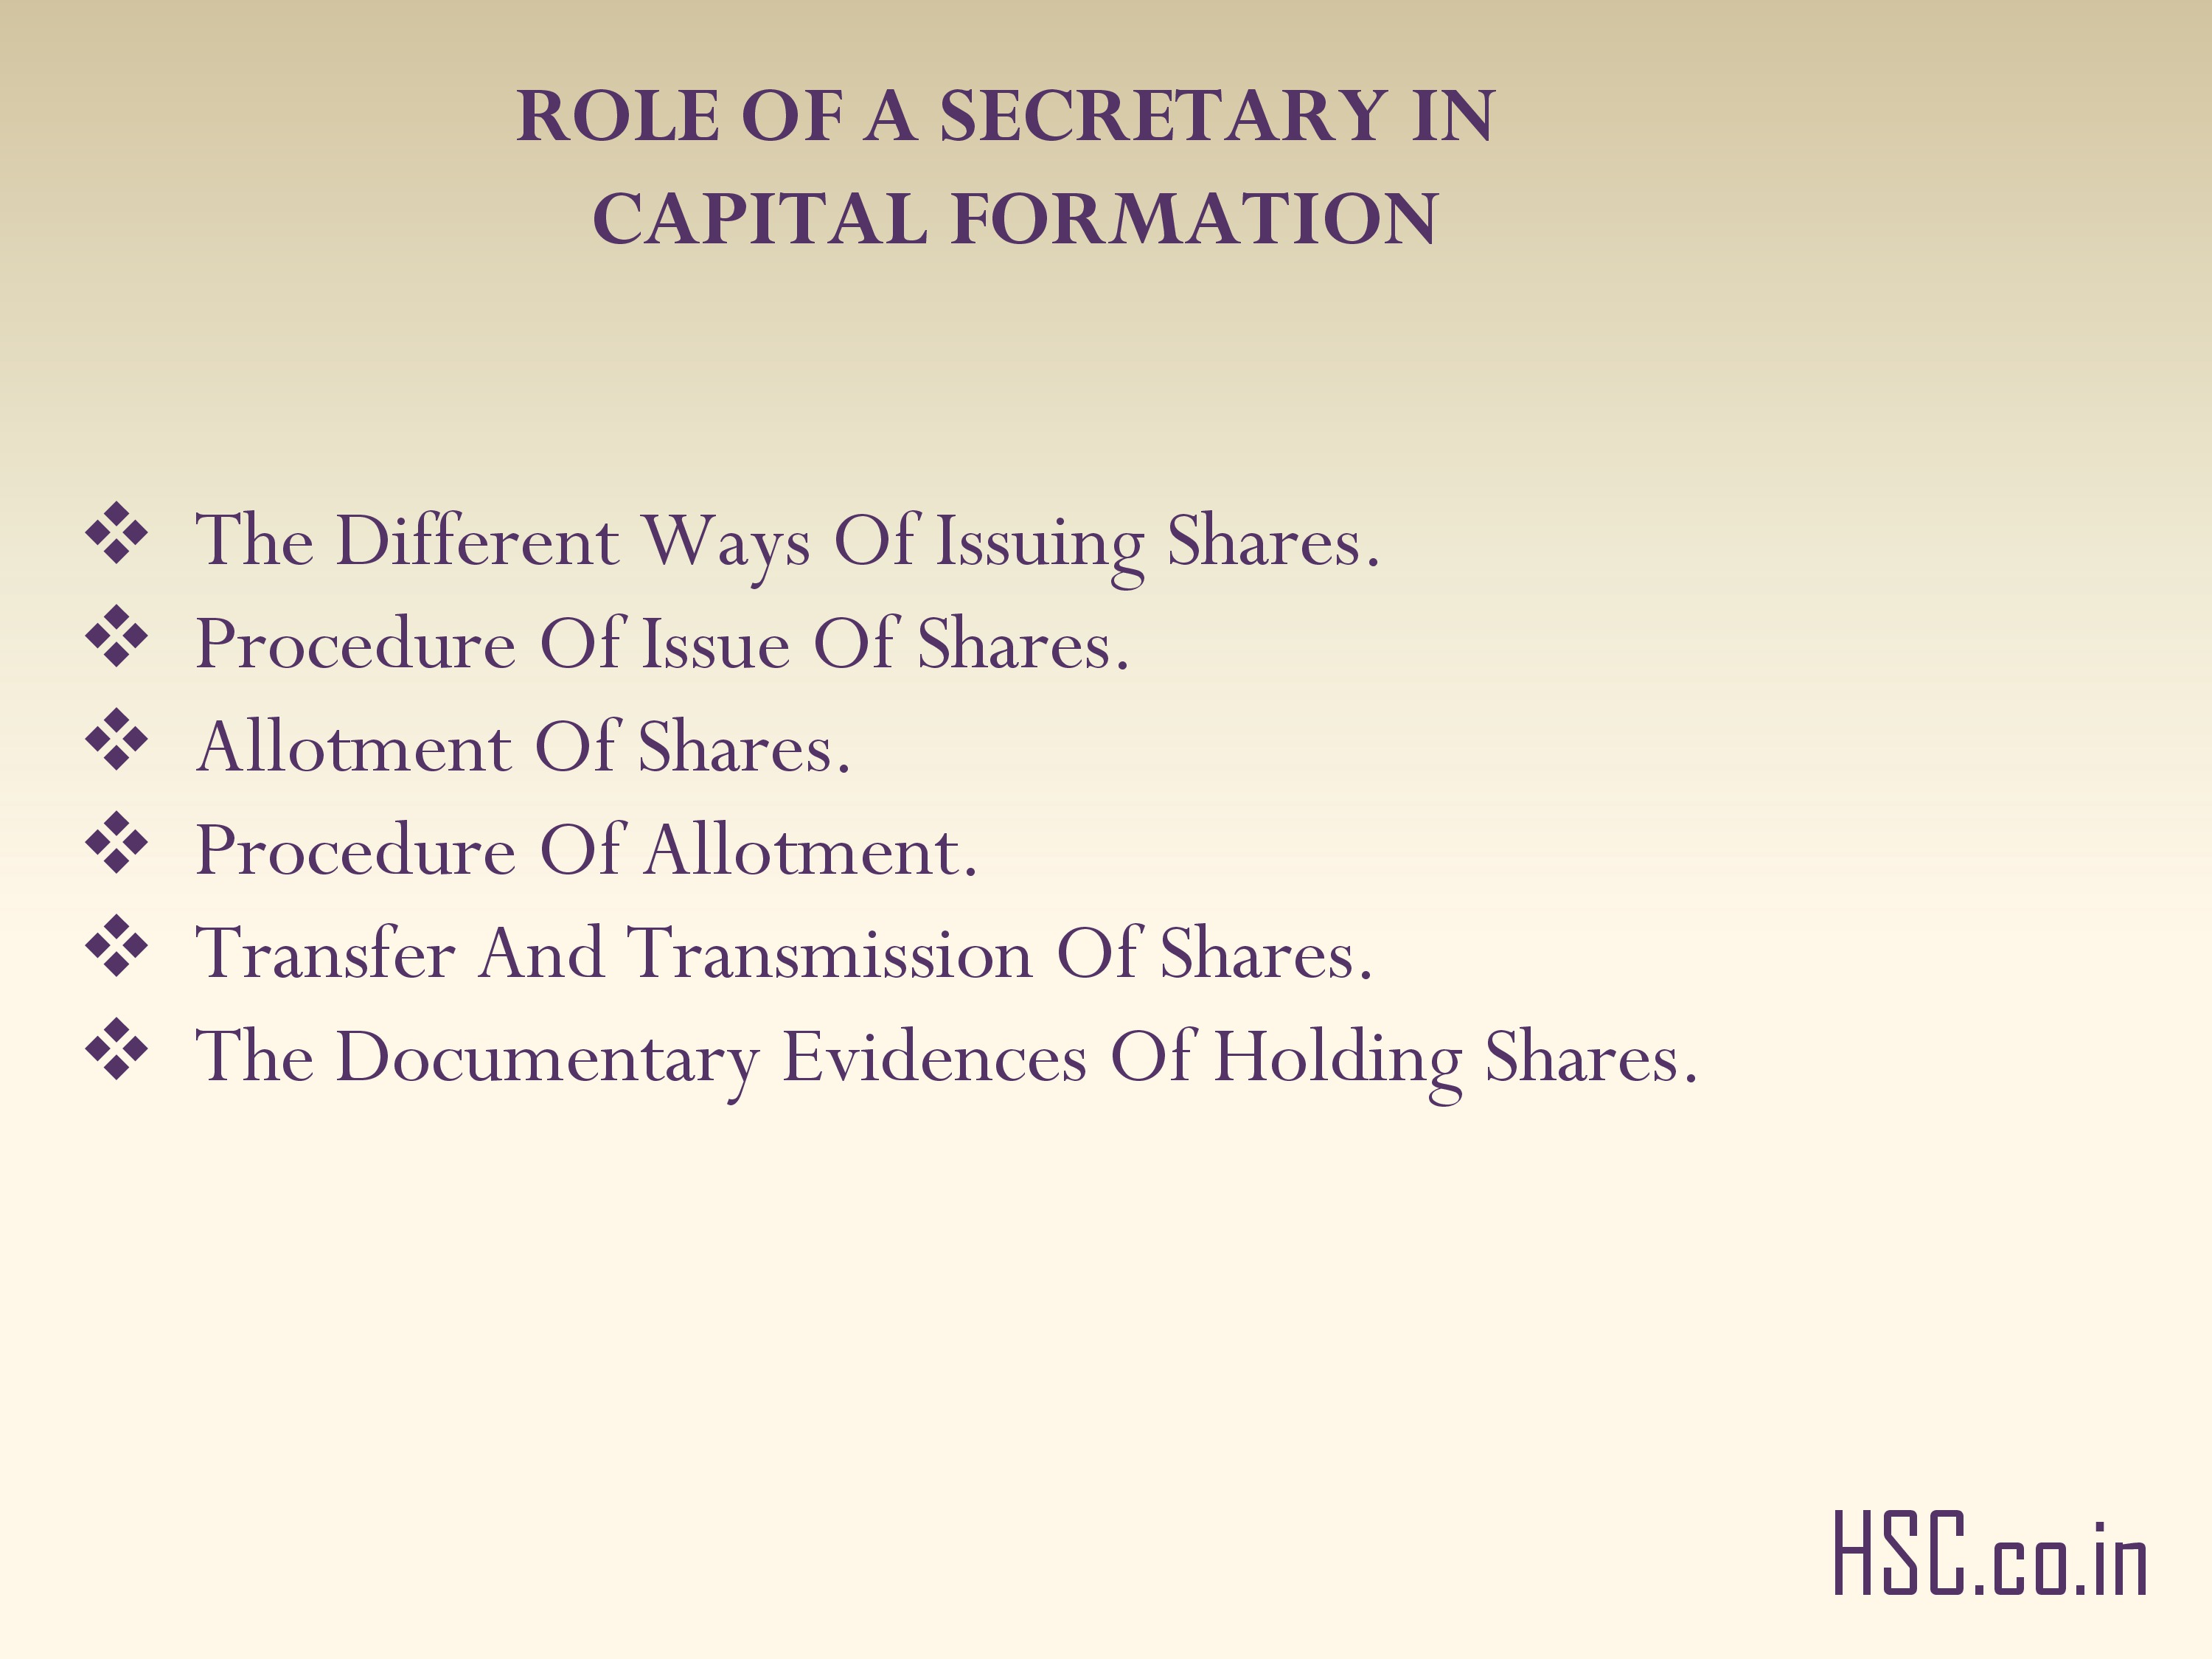 ROLE OF A SECRETARY IN CAPITAL FORMATION